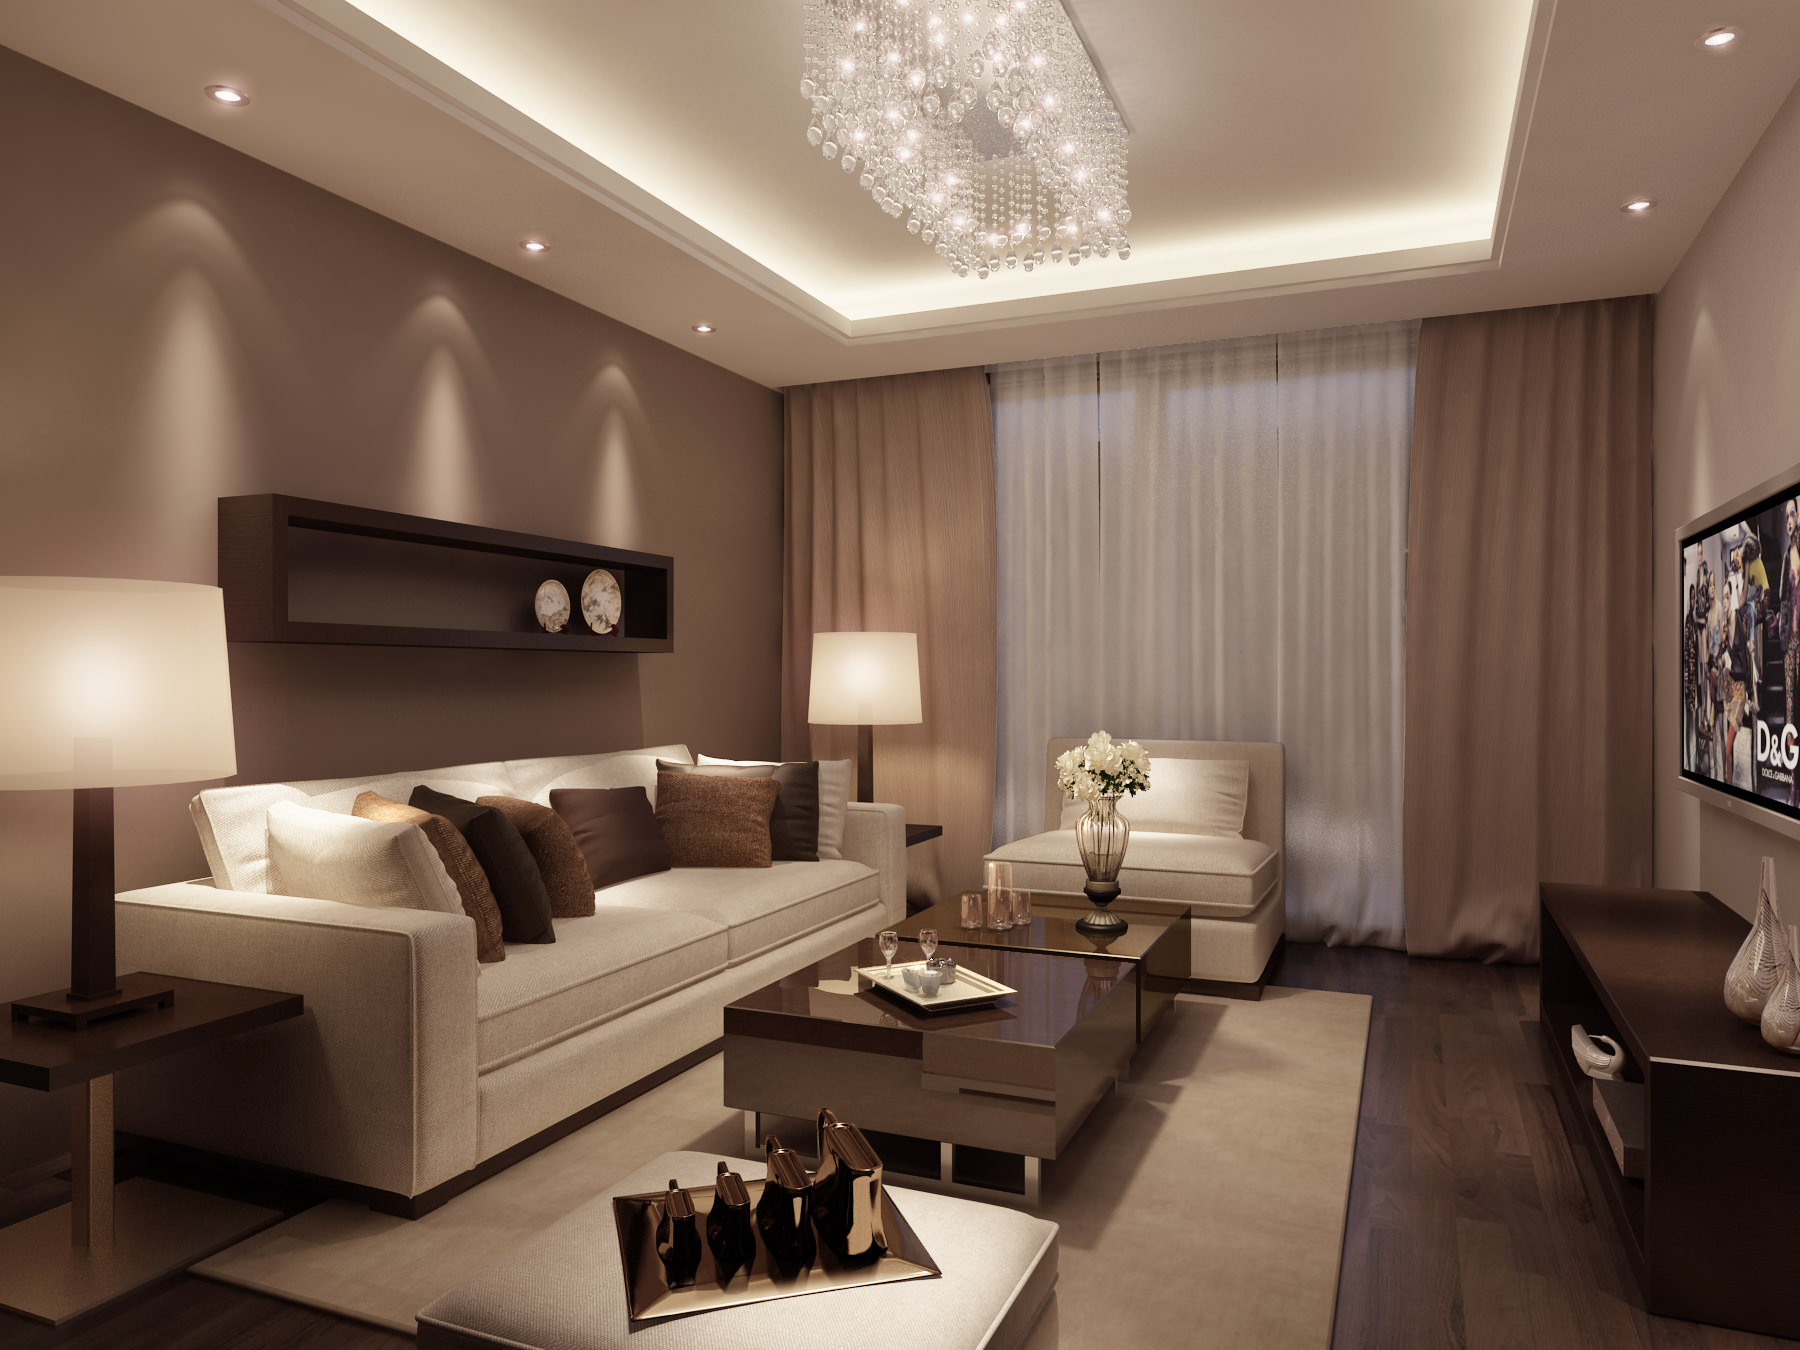 Living Room 3d Model 3d living room architectural | cgtrader